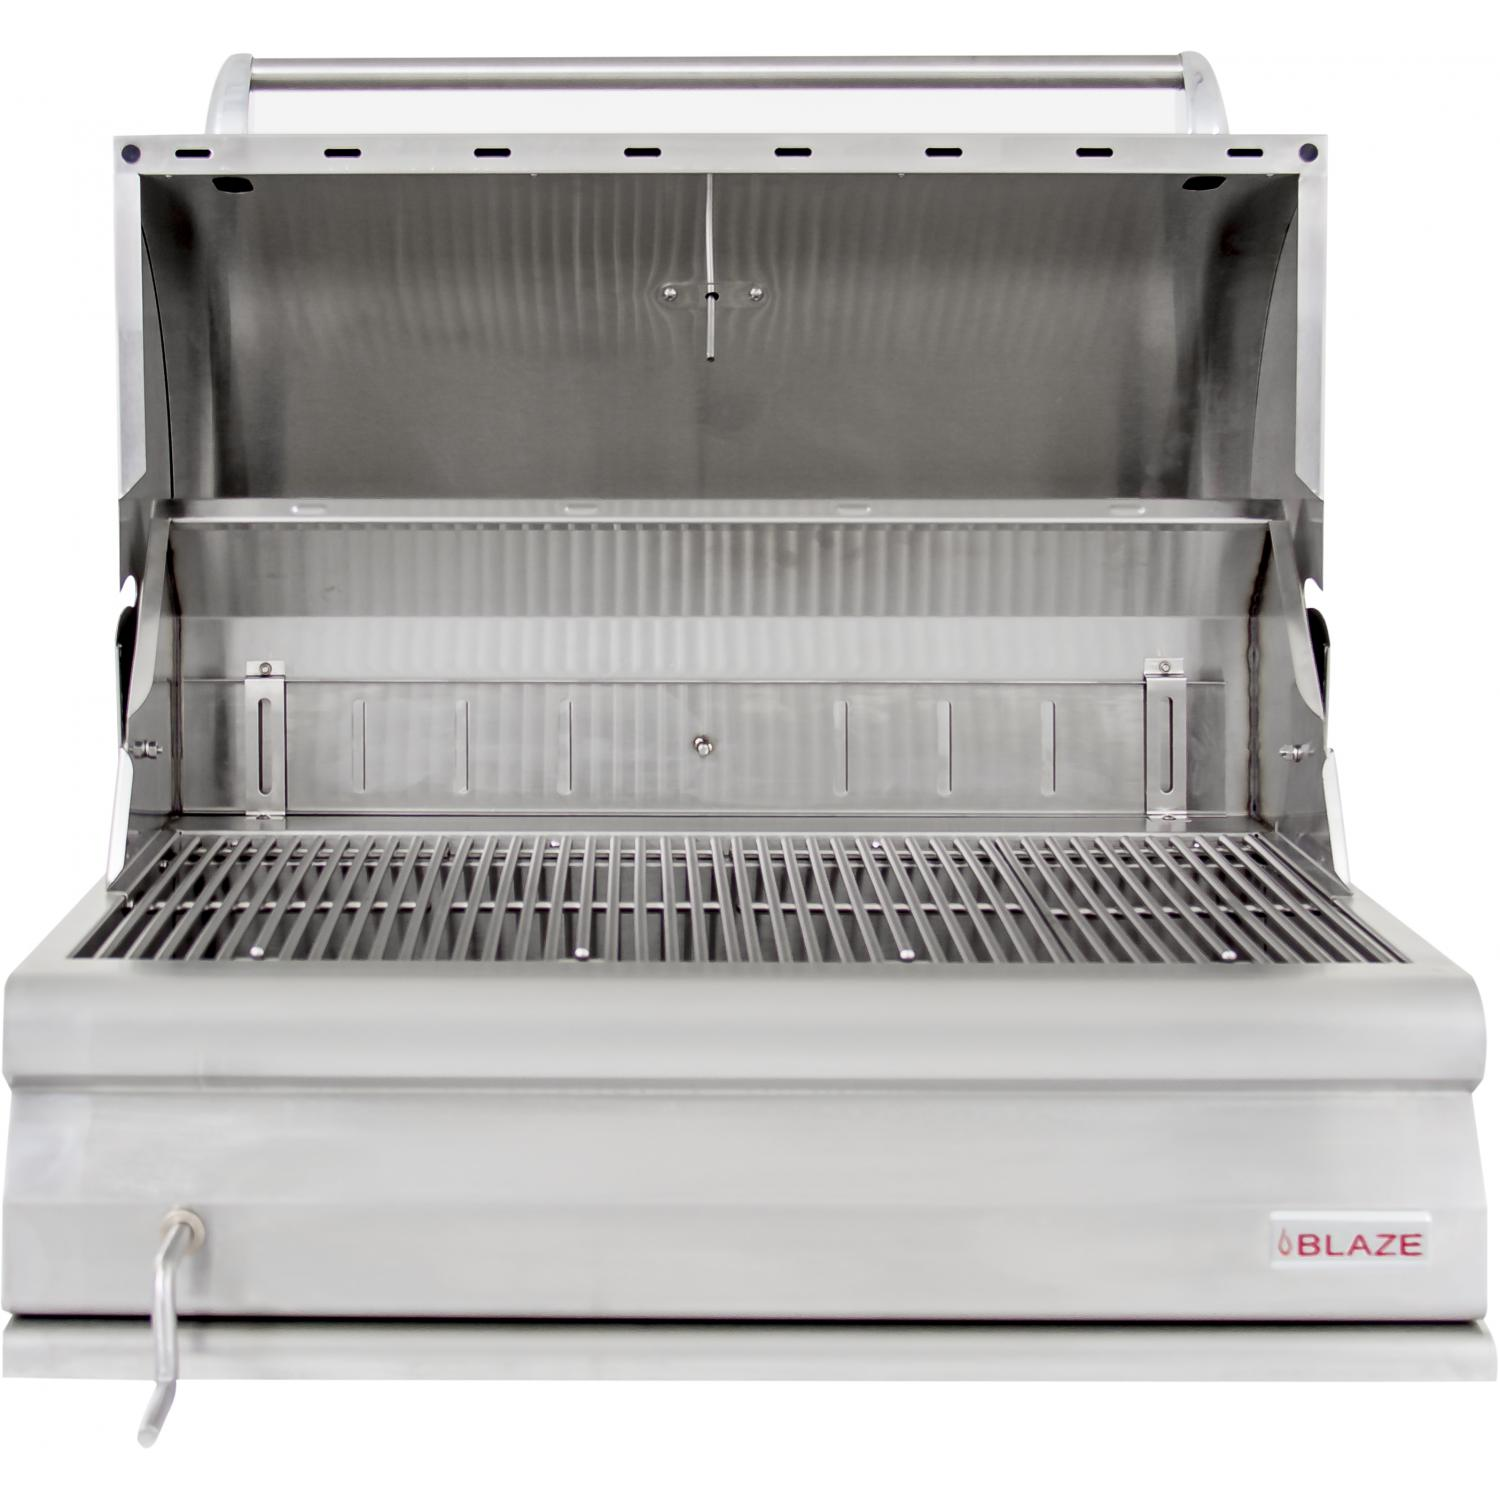 Rvs Bbq Blaze 32 Inch Built In Stainless Steel Charcoal Grill With